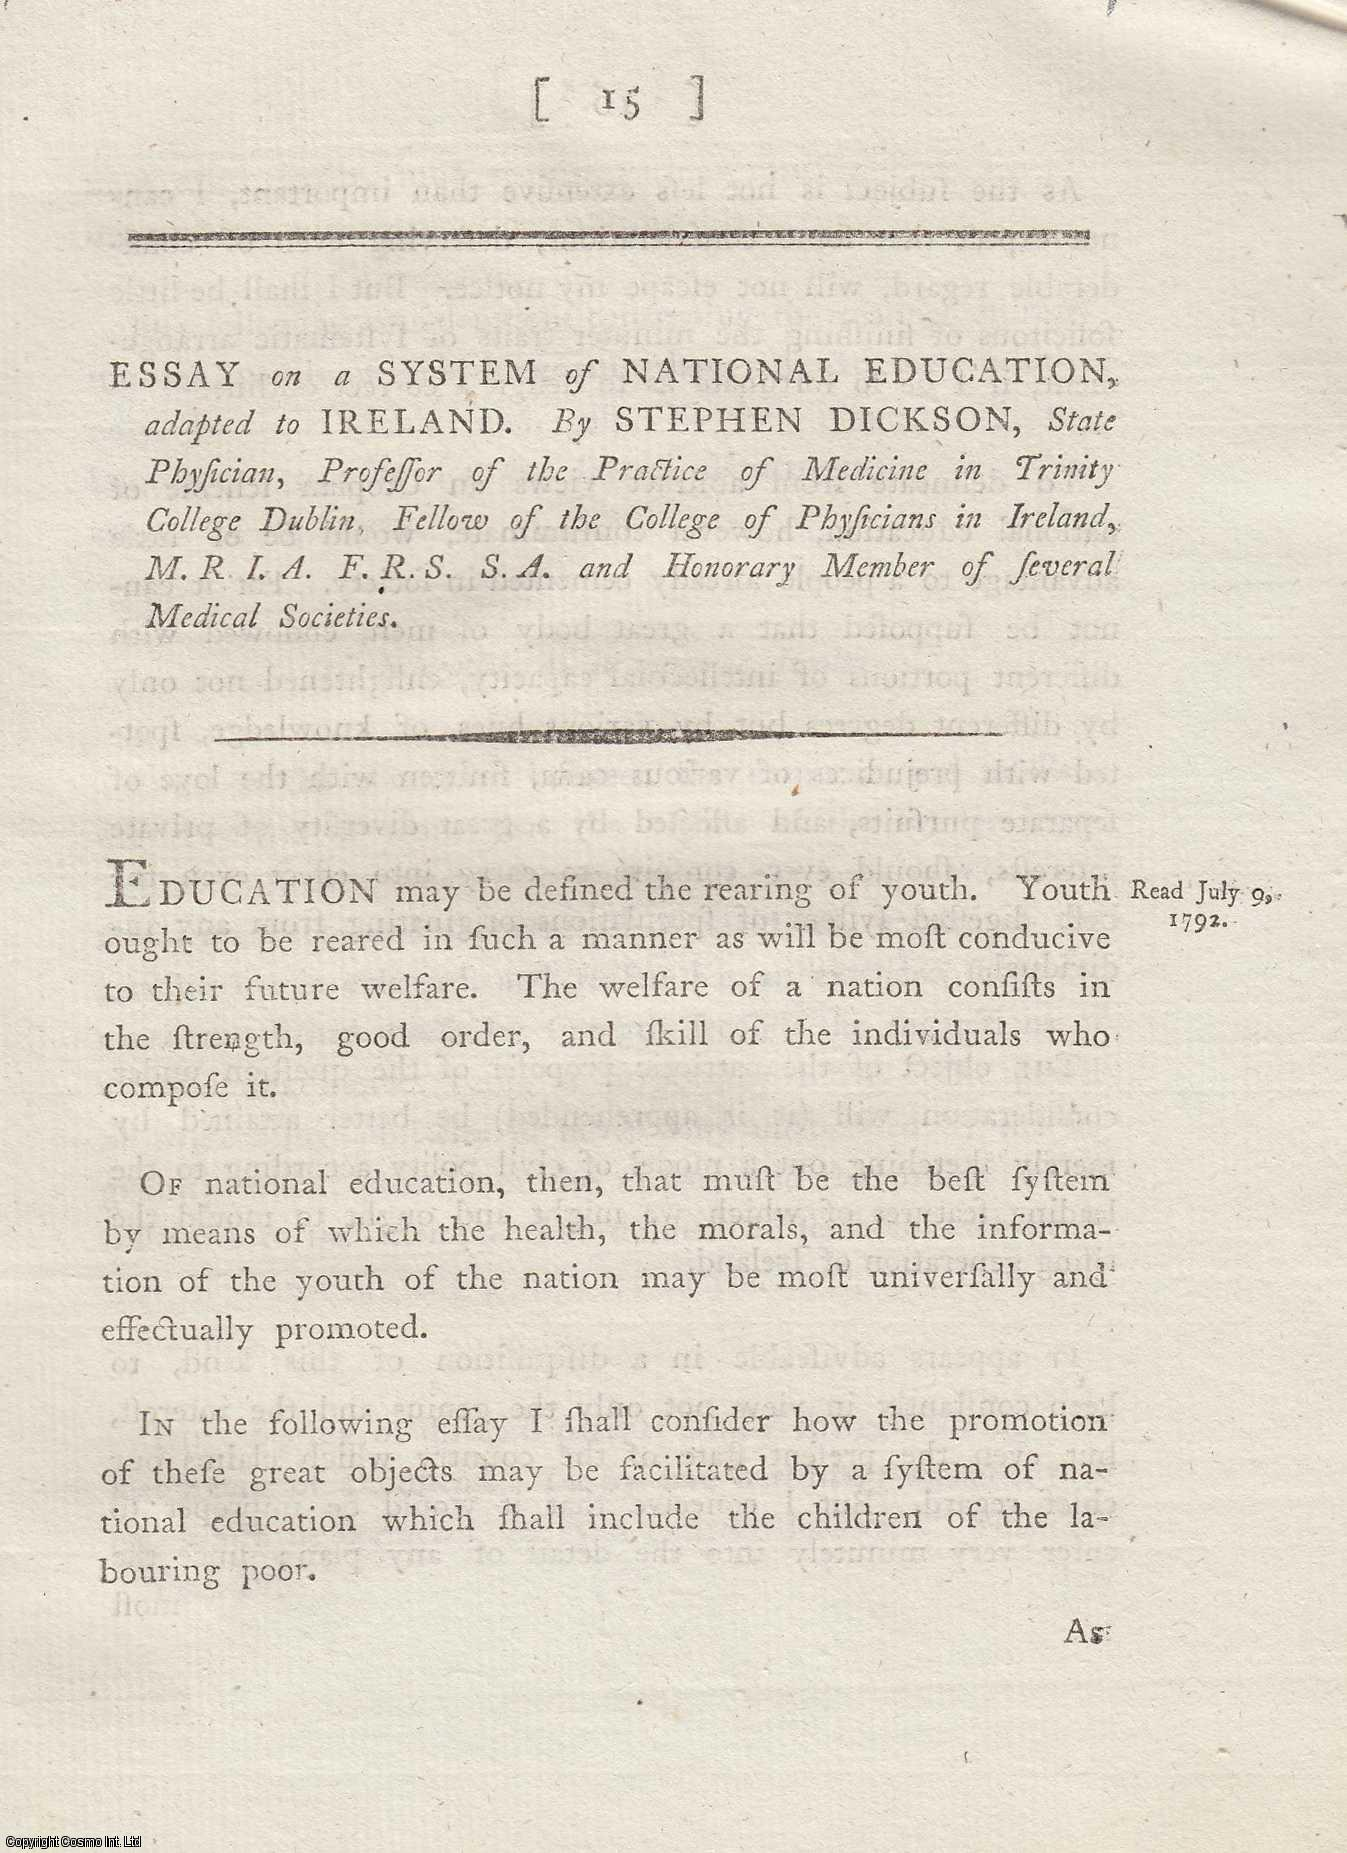 Essay on a System of National Education, adapted to Ireland. From Transactions of the Royal Irish Academy., Dickson, Stephen.